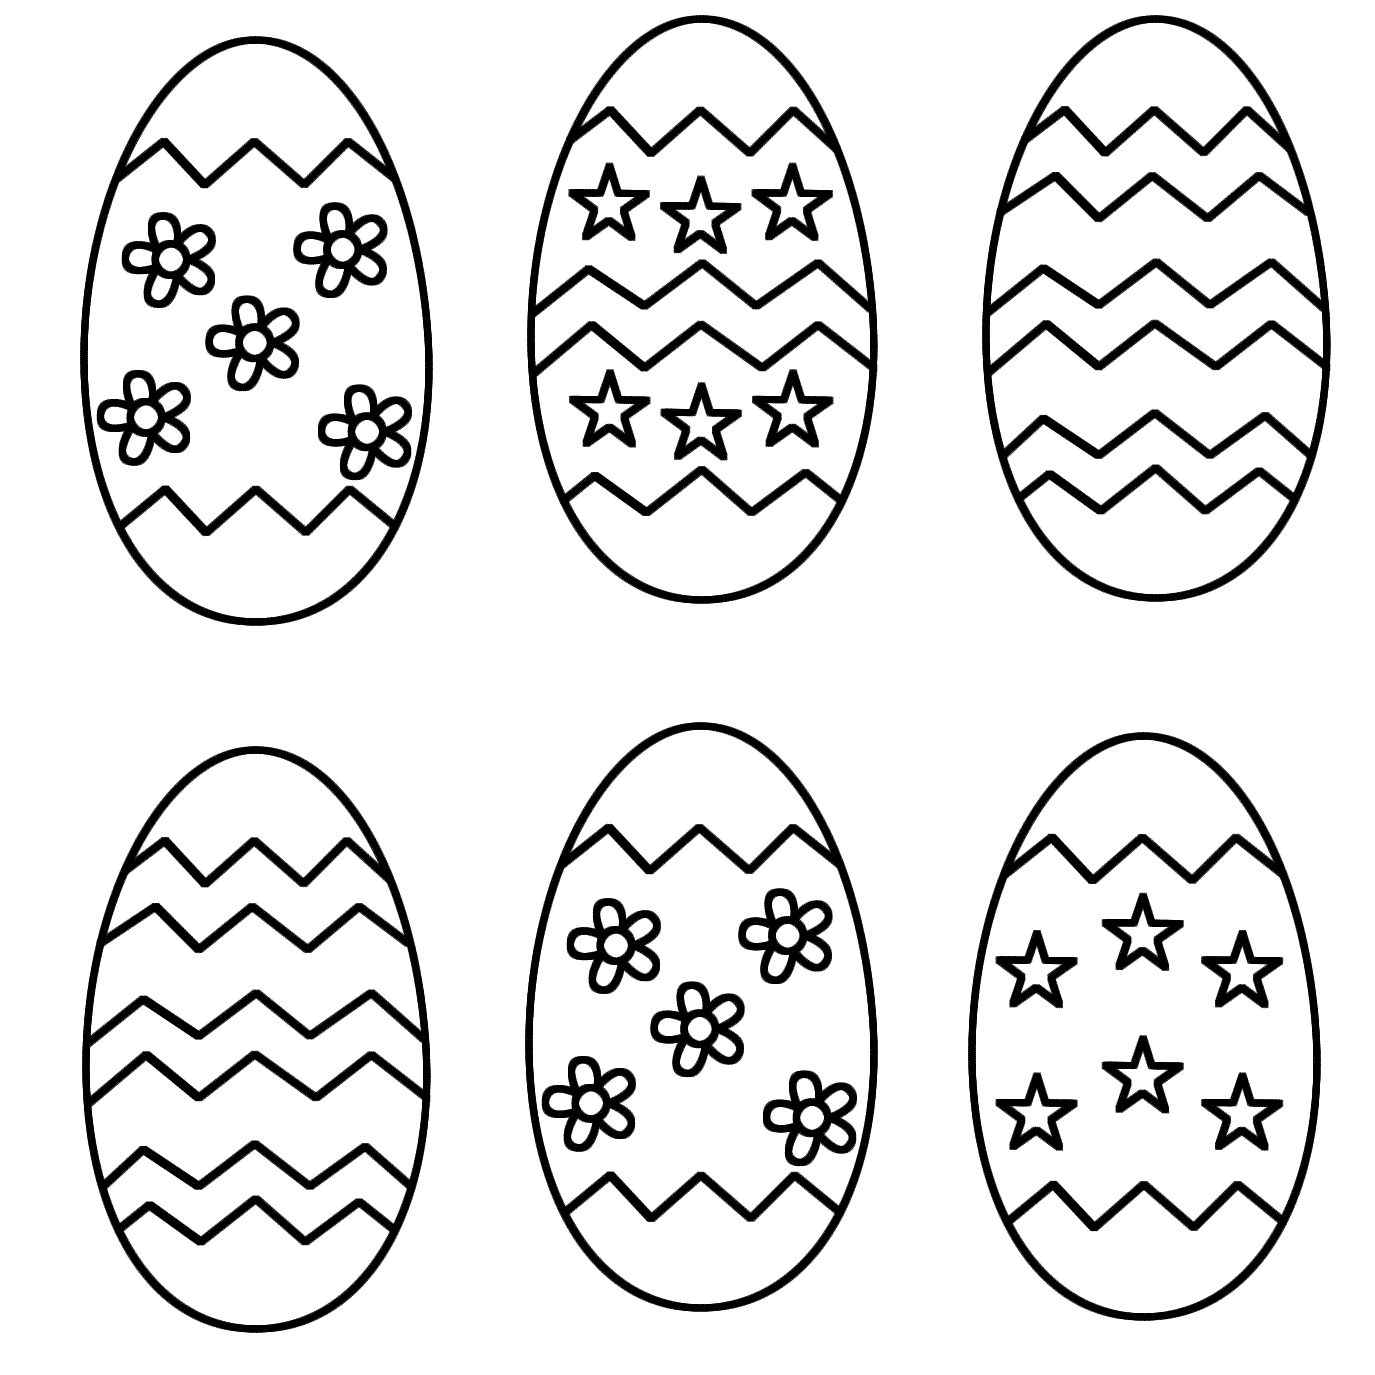 Easter Coloring Pages for Childrens Printable for Free Printable Of Delighted Bunny Print Out Coloring Pages Easter for Kids Crazy Printable